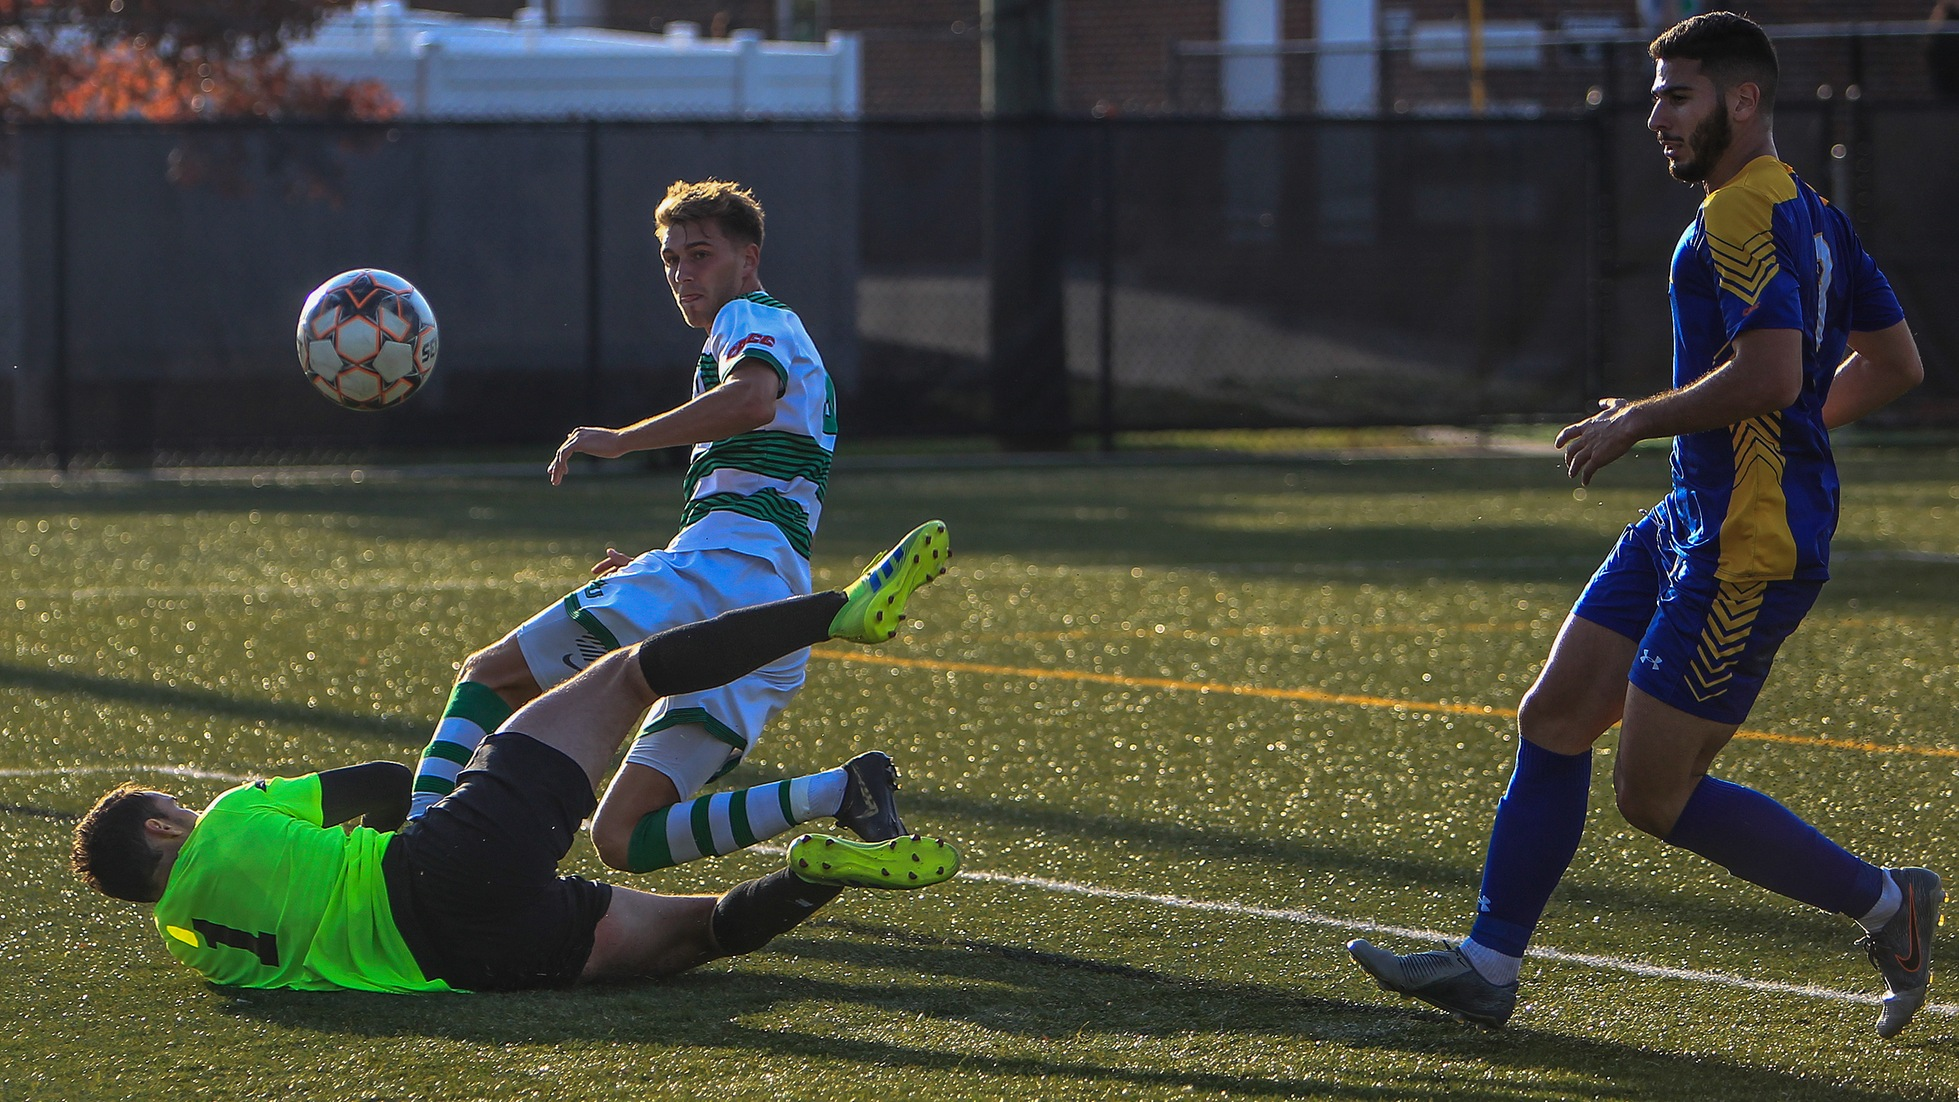 Wilmington University player Lorne Bickley (top) scores a goal against Concordia College goalkeeper Michael Varin  as Concordia?s Luca Wanna (R) follows the play during the first round of the CACC tournament at the Wilmington University Athletic complex in Newark, Delaware, November 11, 2019. Tim Shaffer Photo.